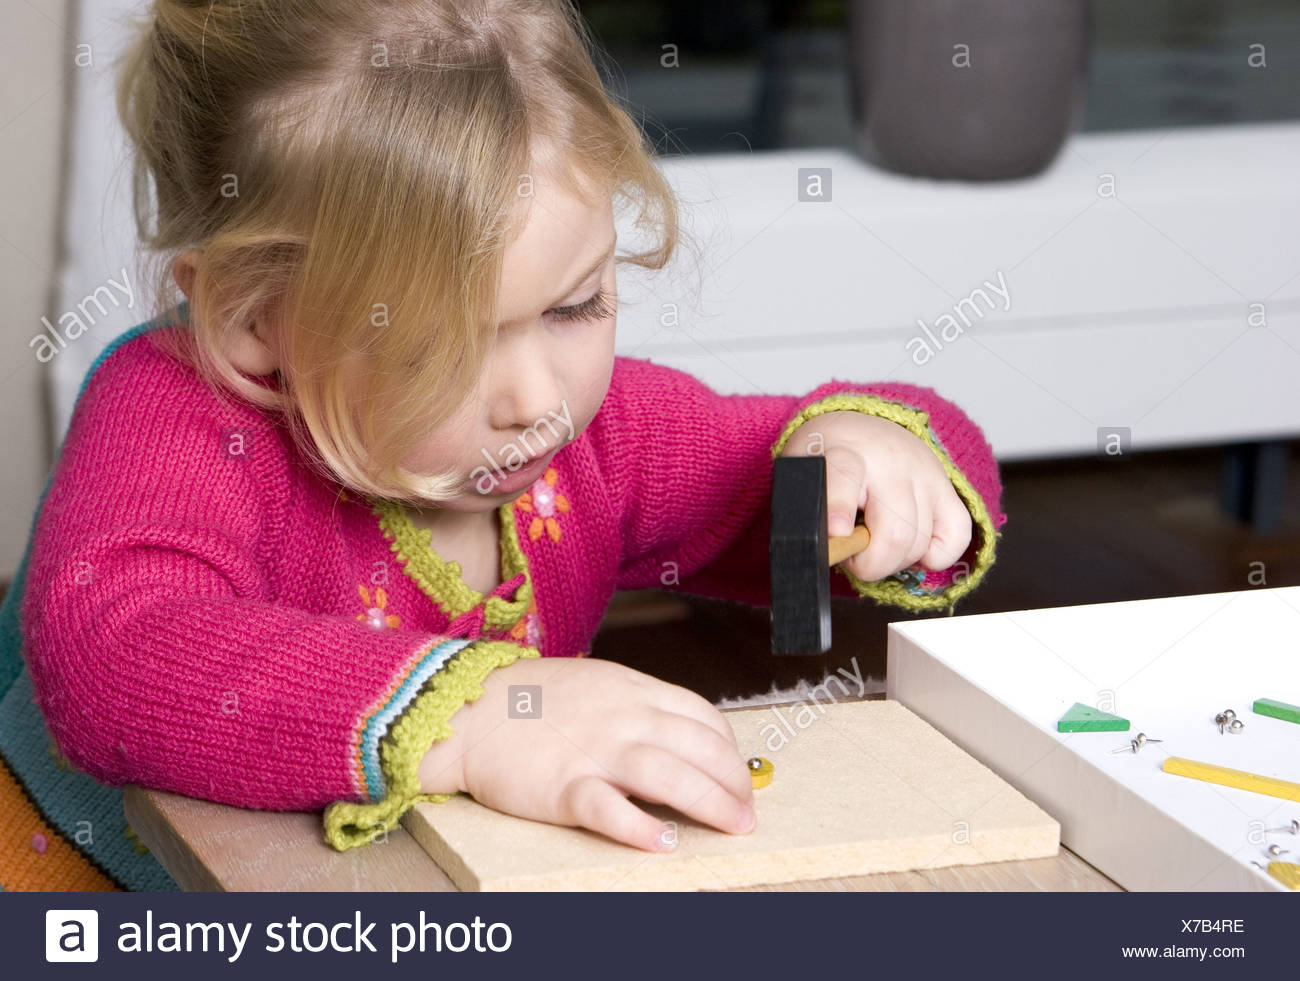 2 Years old child playing - Stock Image